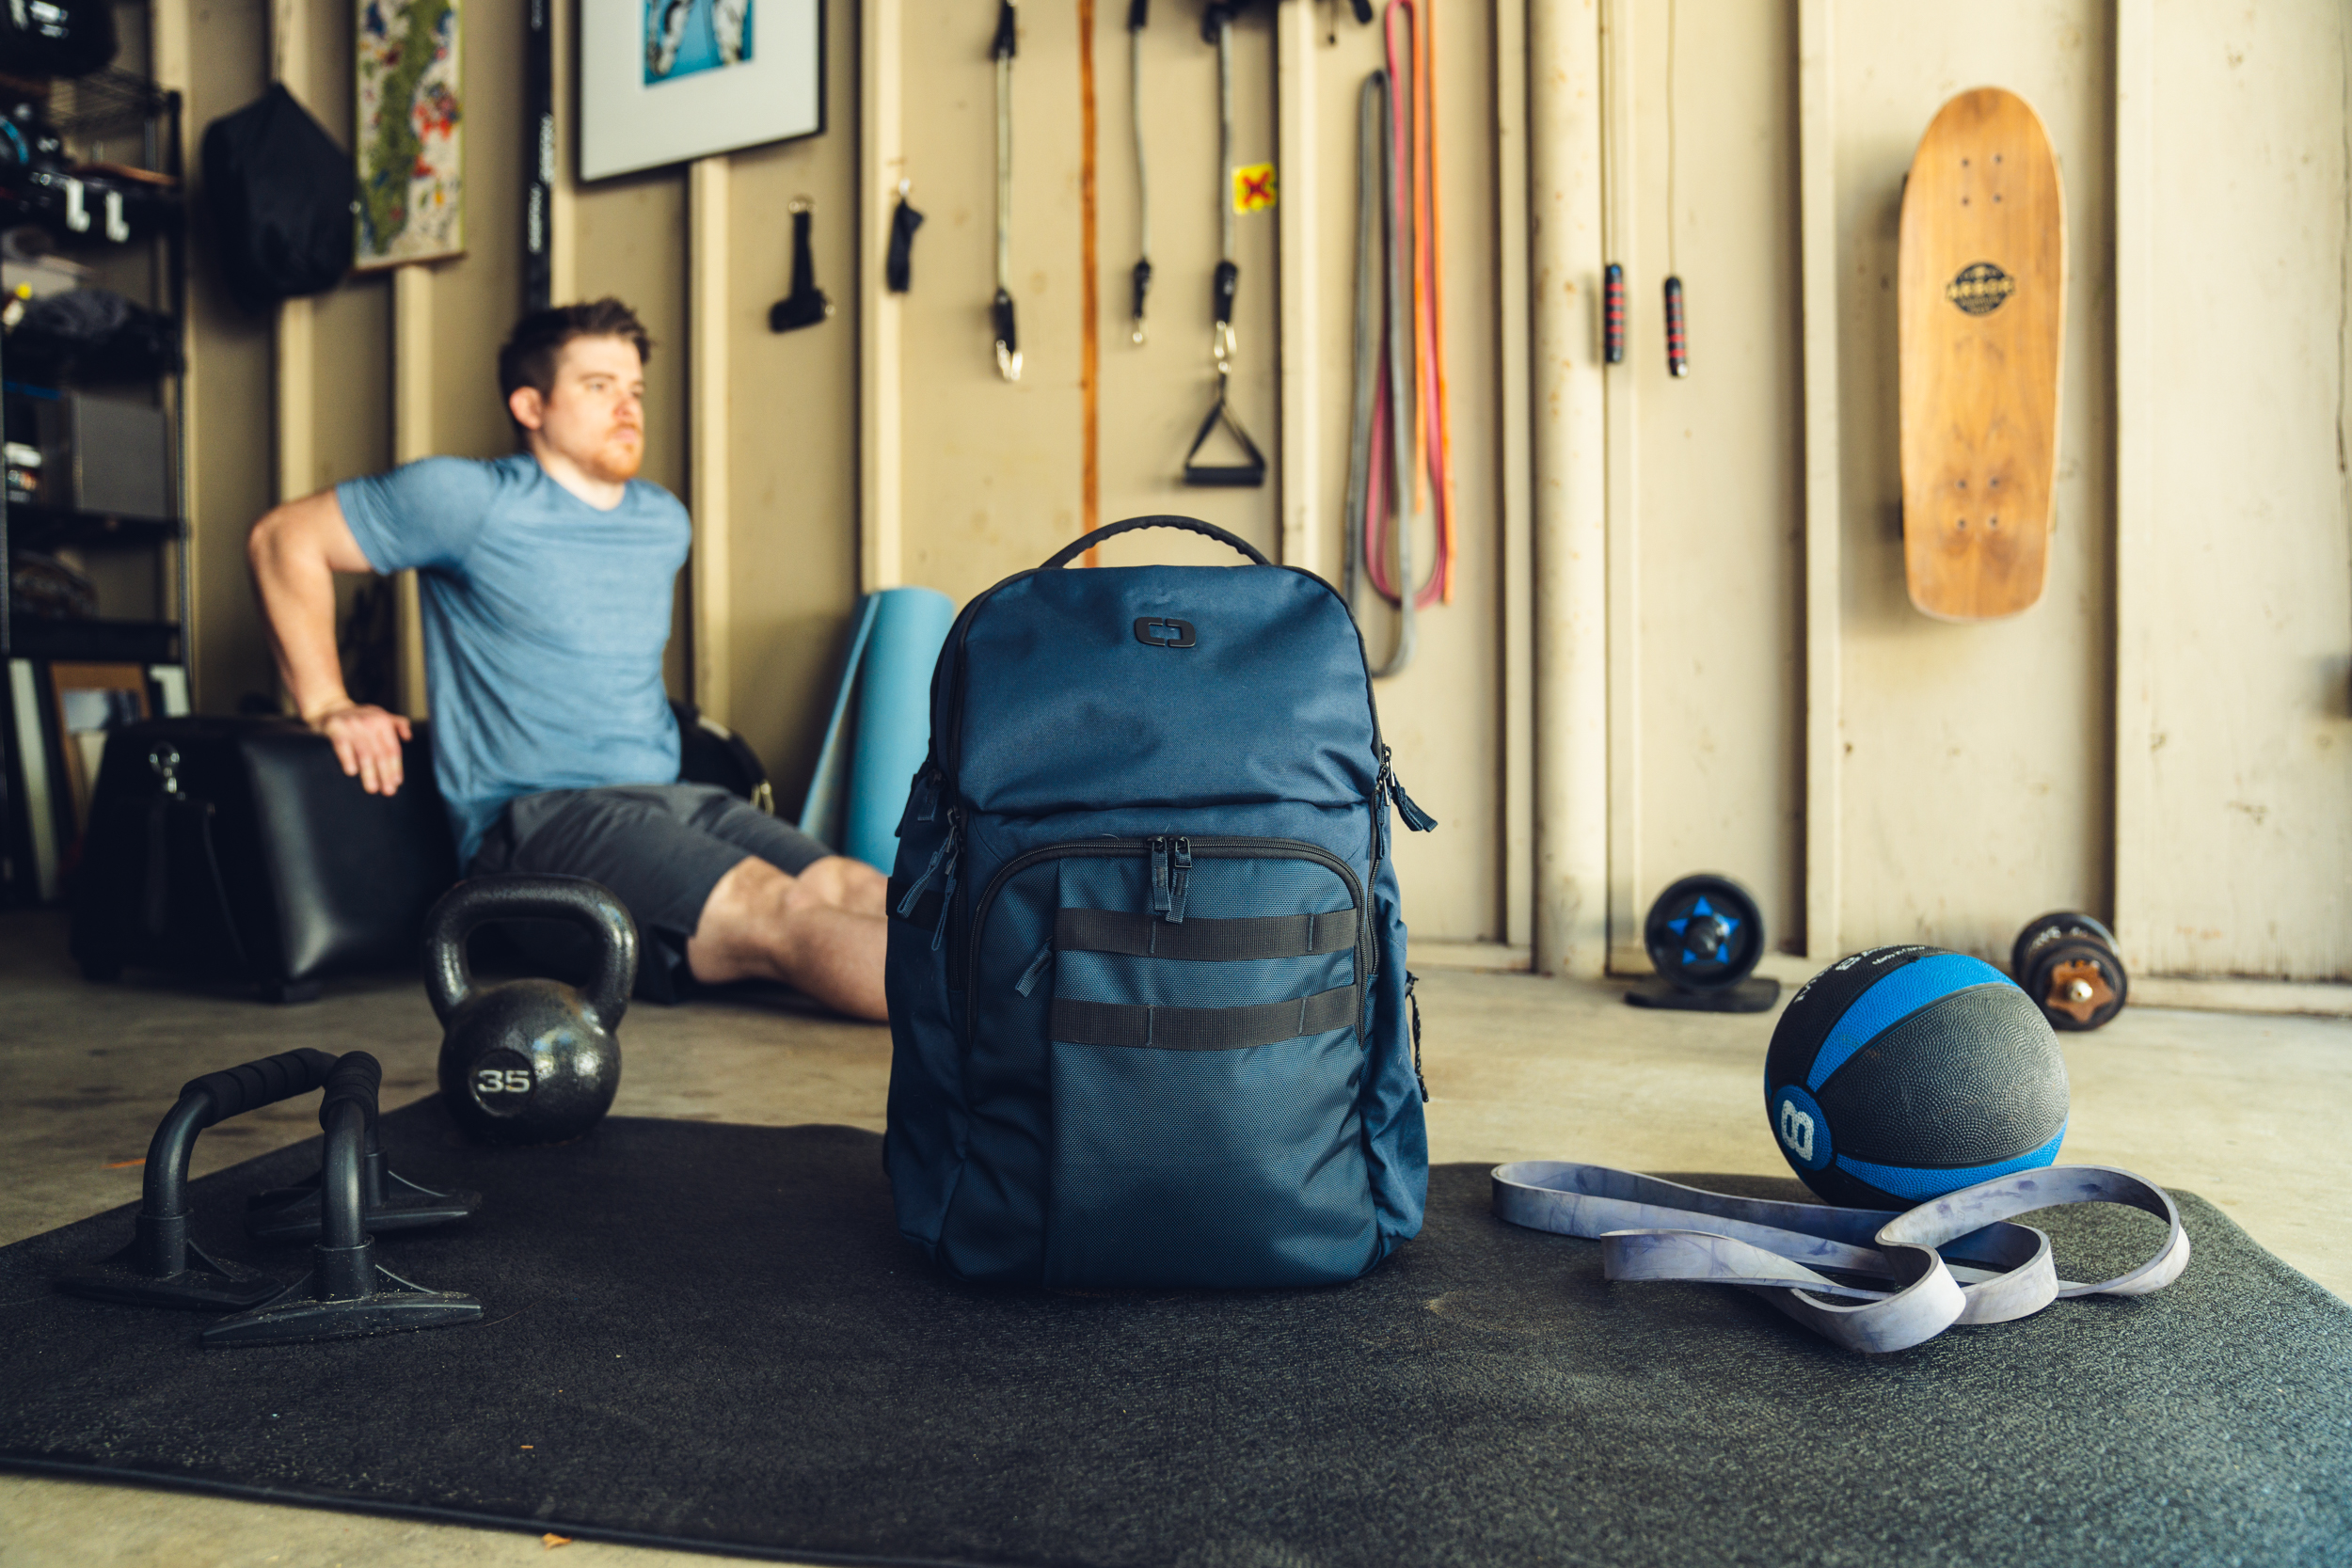 pace-pro-25-backpack-lifestyle-3